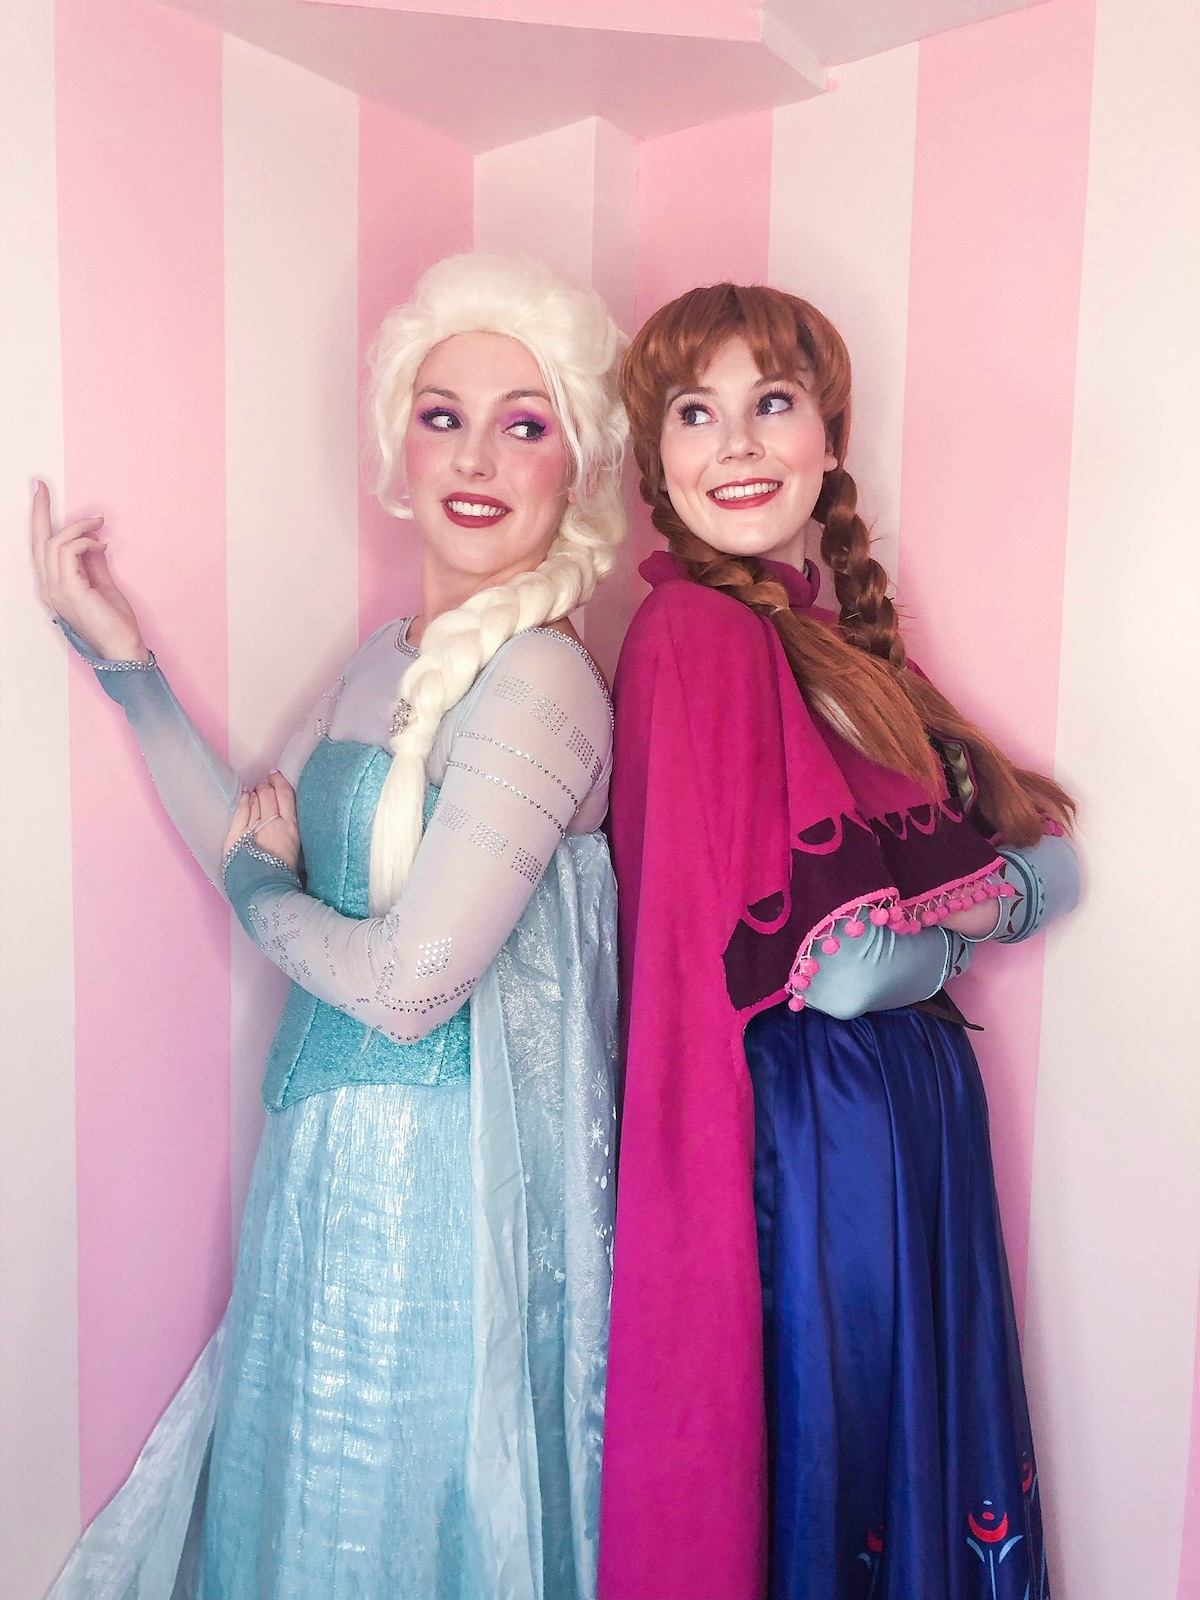 Elsa and Anna are smiling and looking at each other